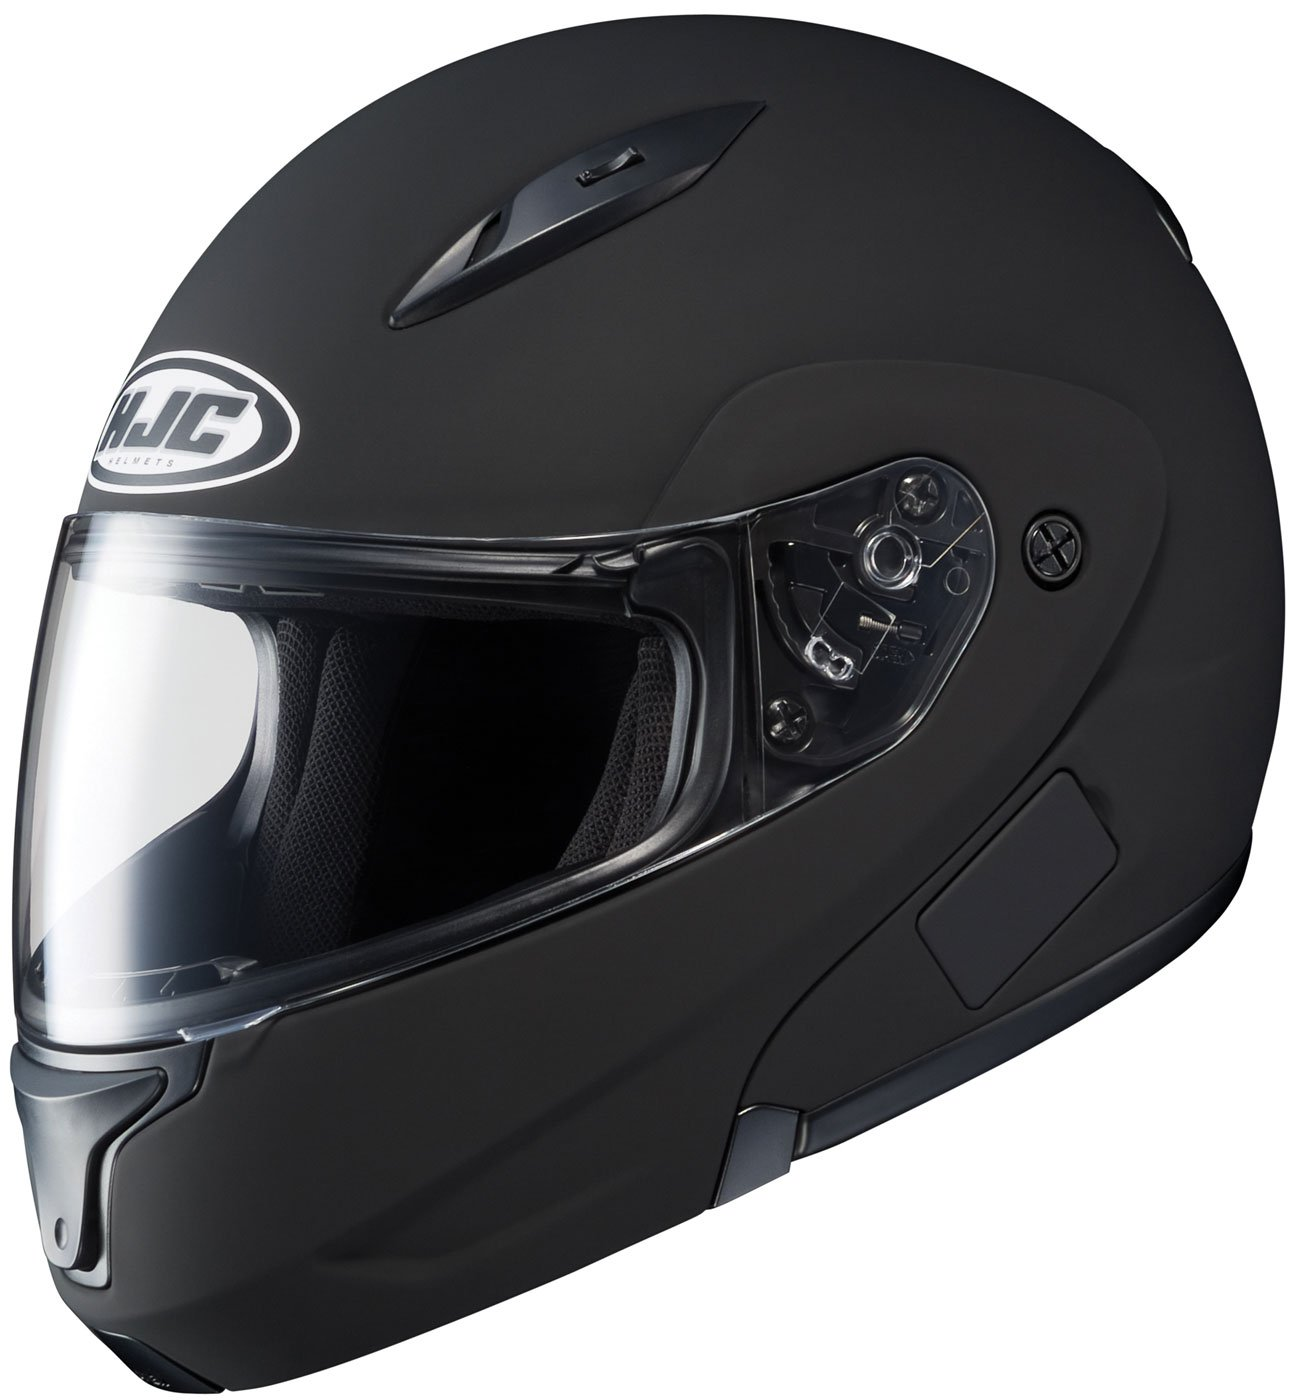 Best Bluetooth Motorcycle Helmet & Headset Reviews-Ultimate